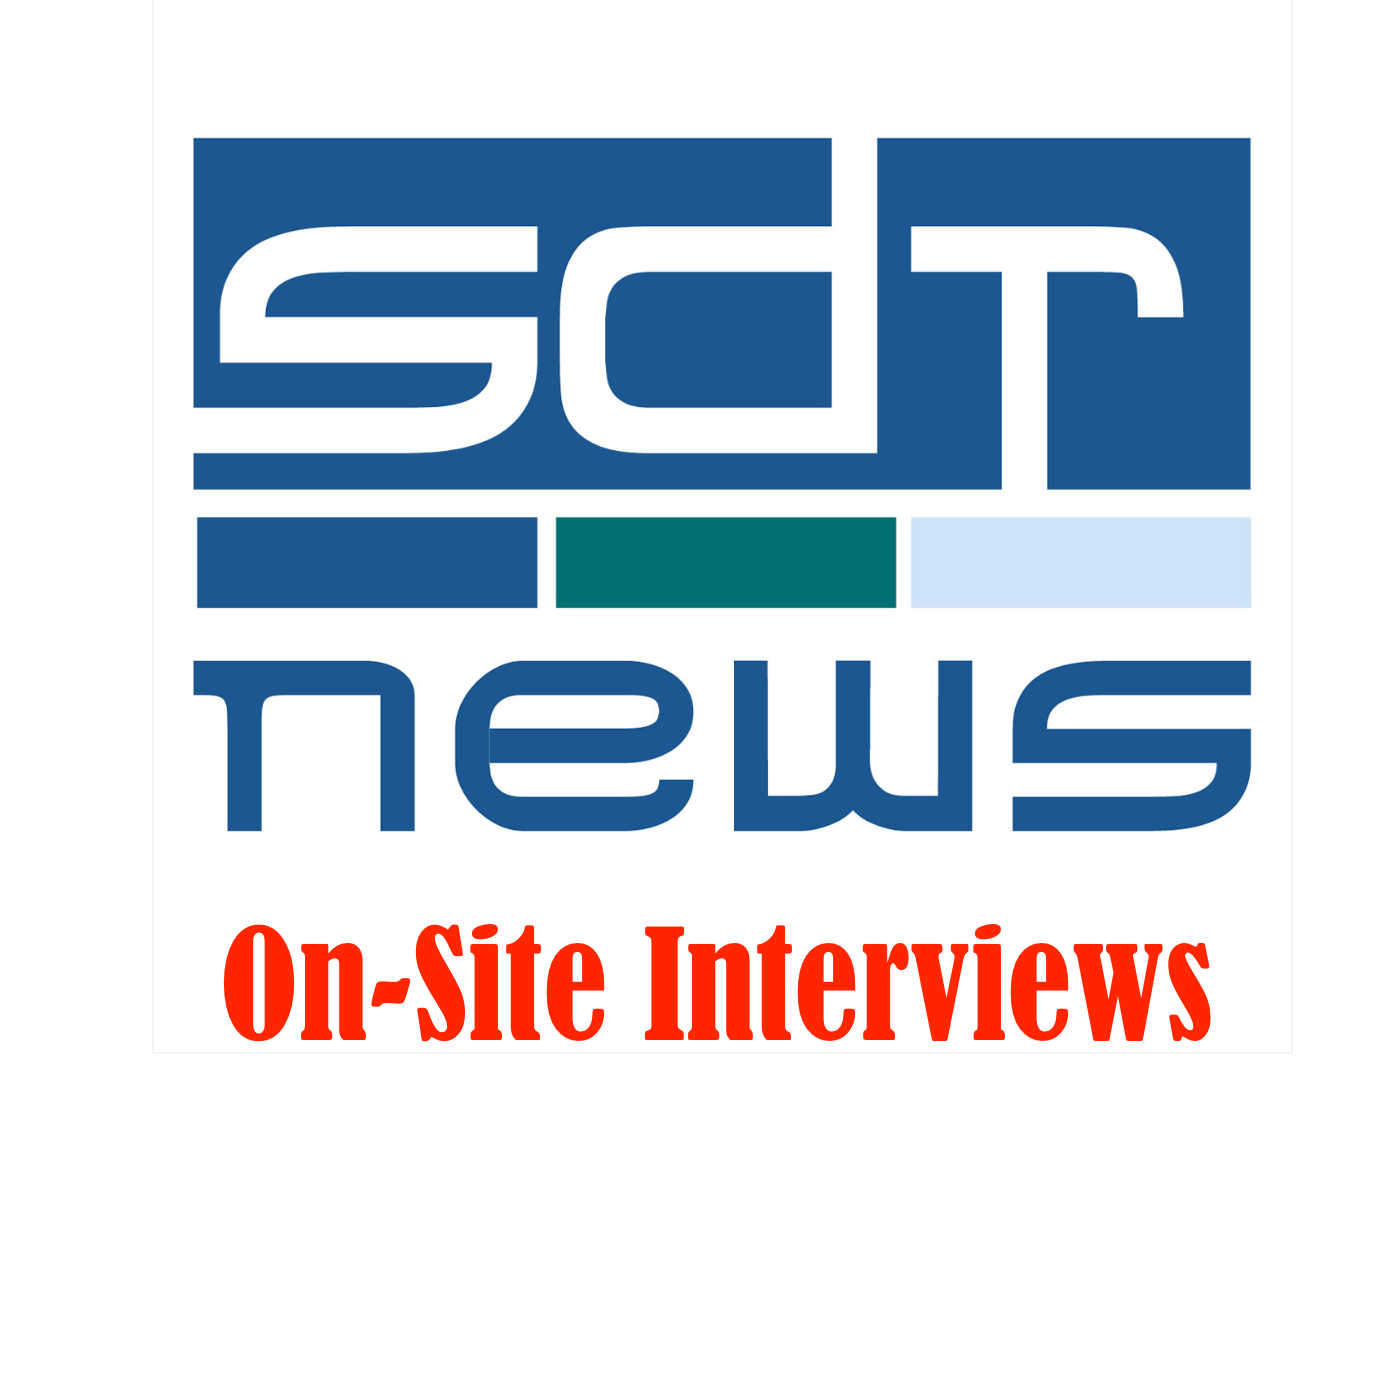 SDRNews: On-Site Interviews